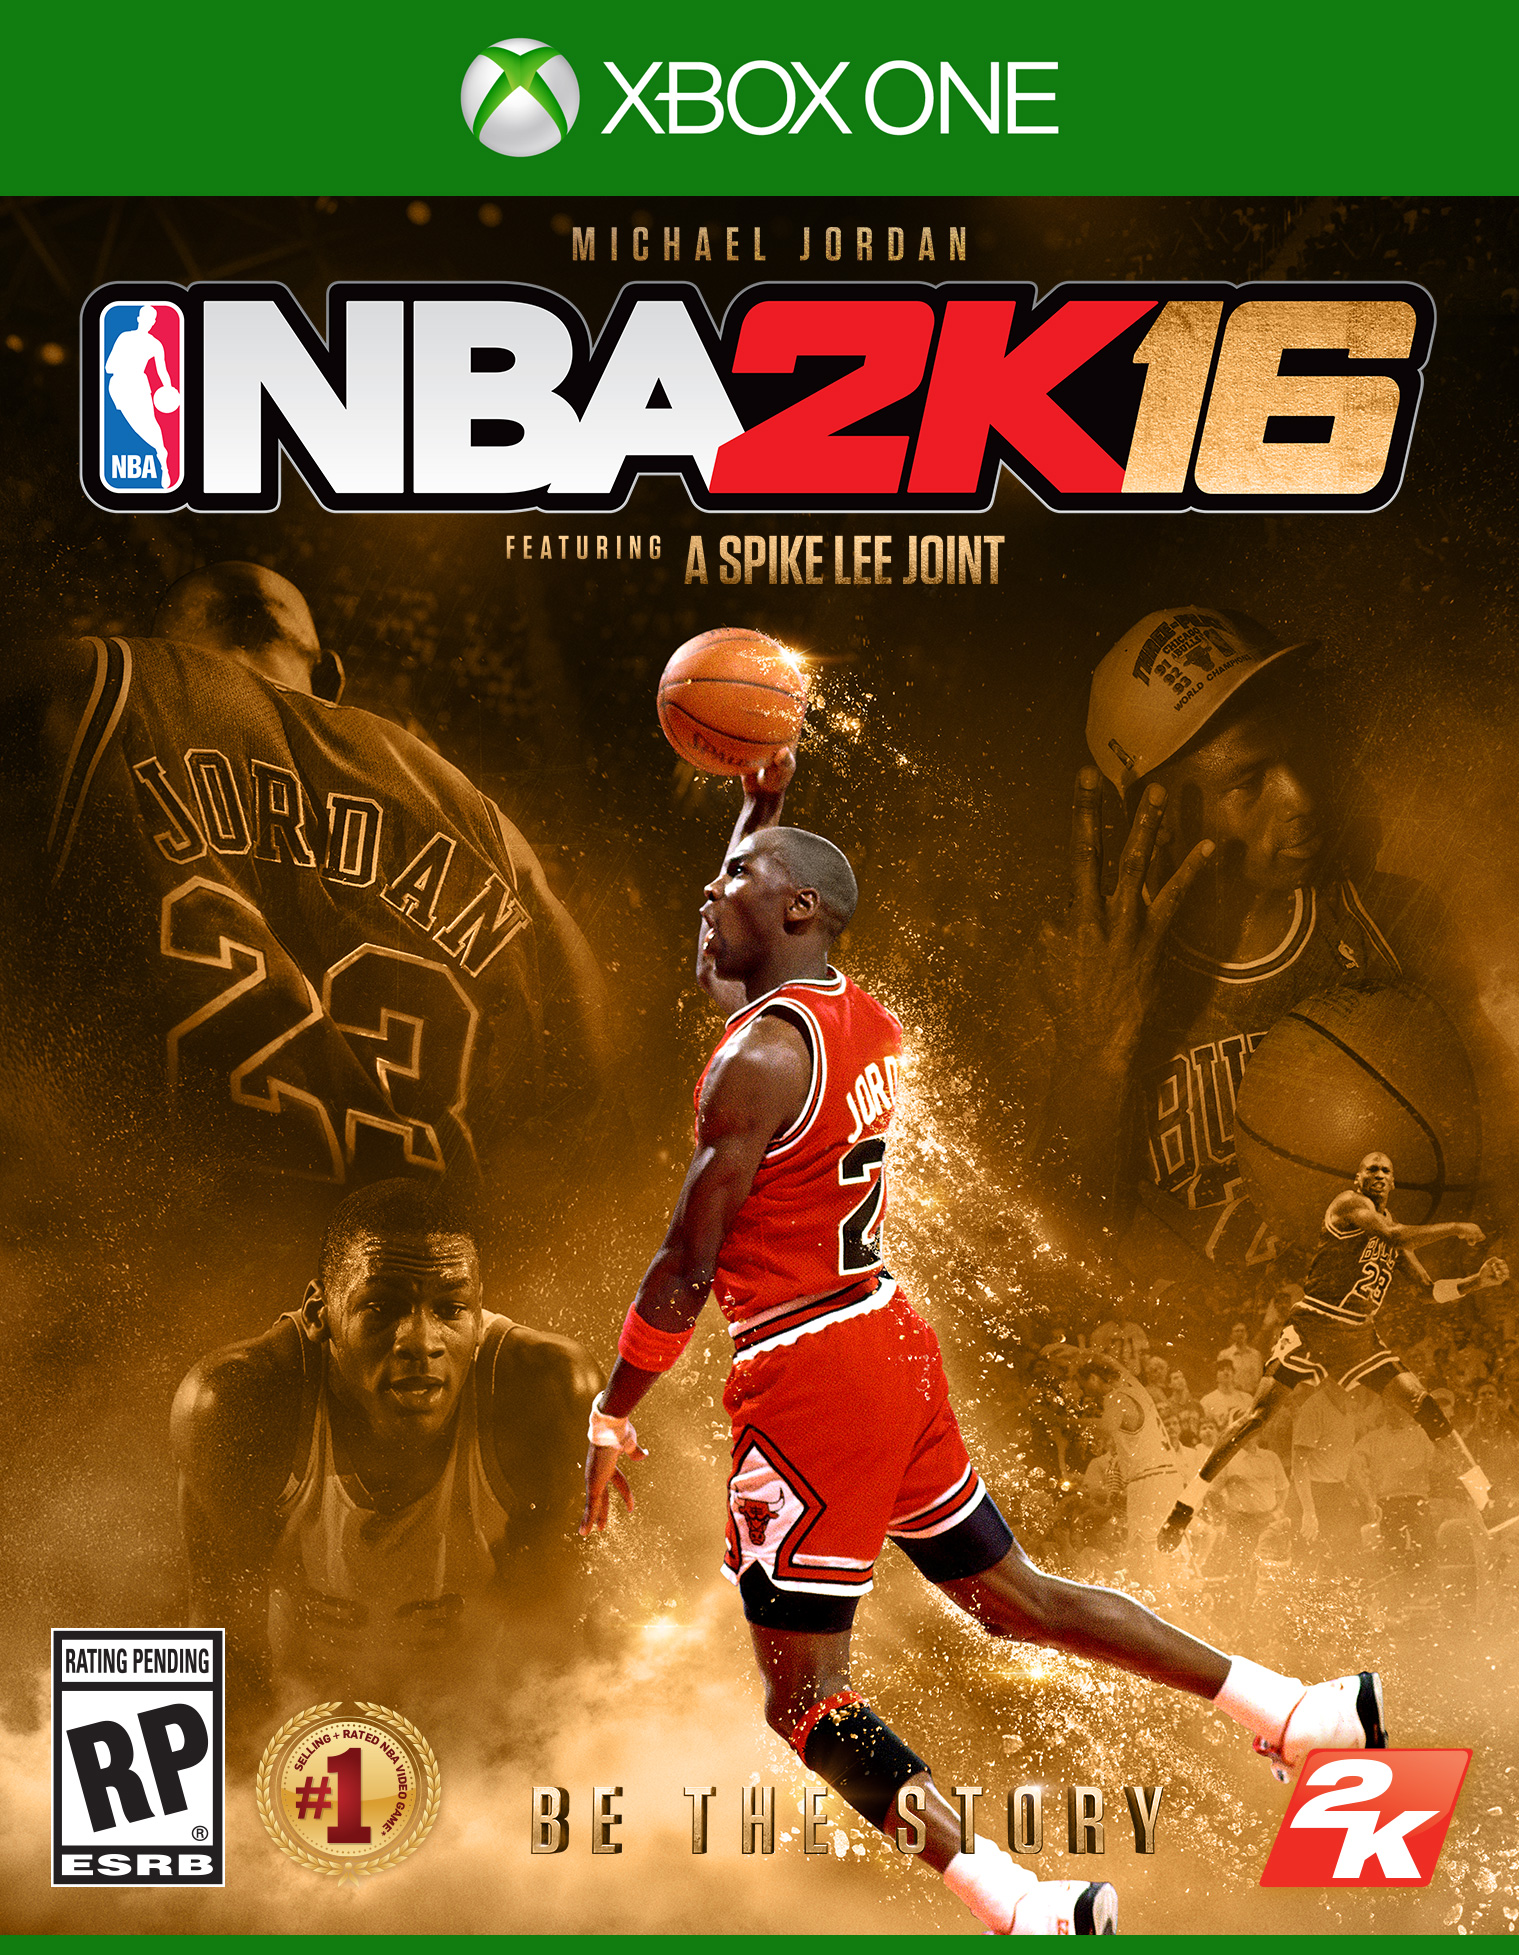 NBA 2K16 Special Edition brings back Michael Jordan on the cover